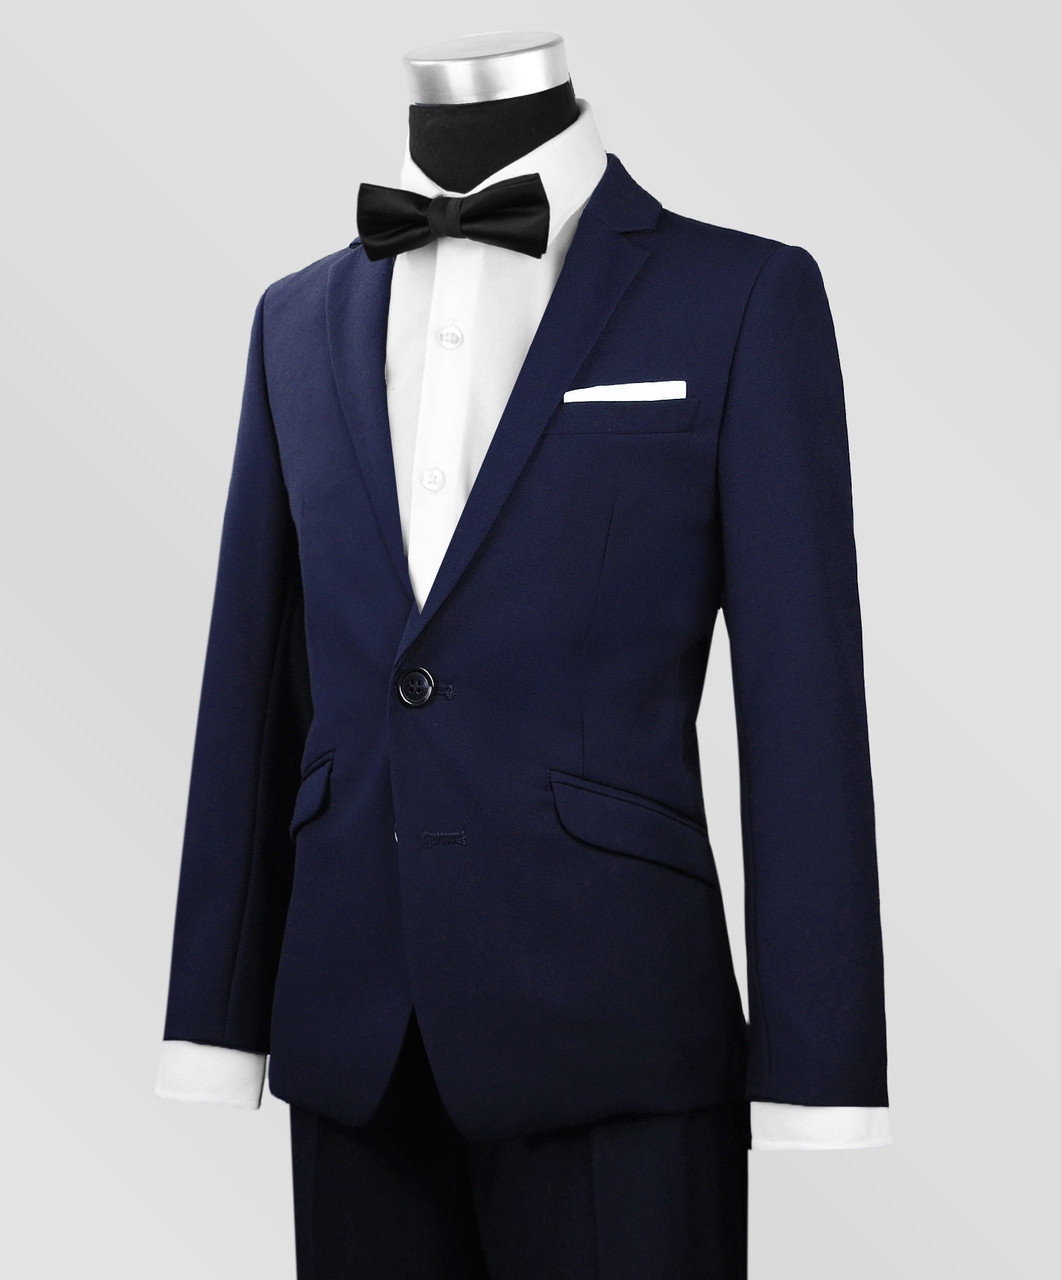 93900cf48664 Black N Bianco Signature Boys Slim Navy Tuxedo with Bow Tie